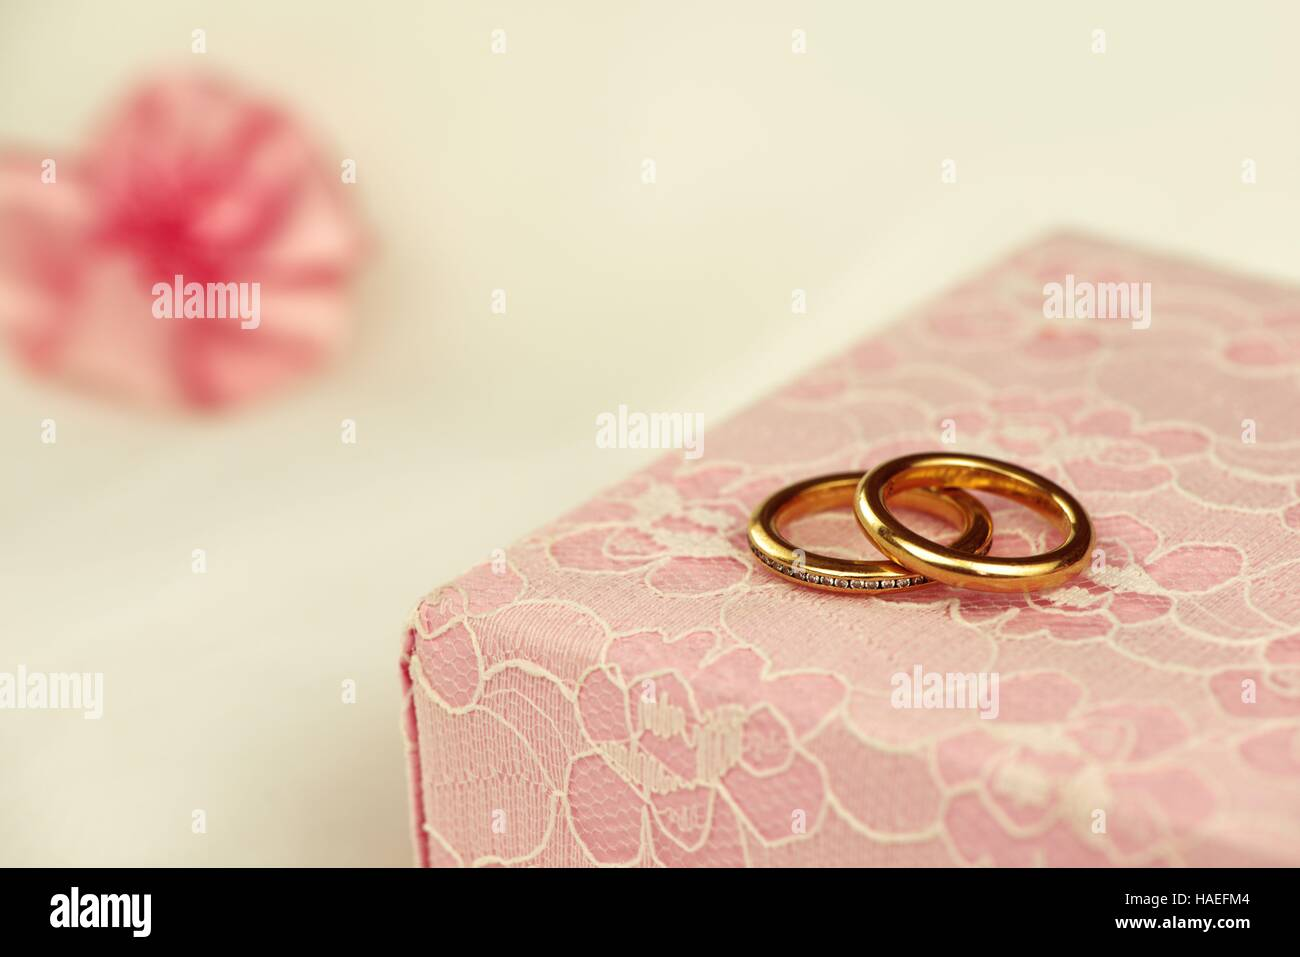 Wedding rings on a pink gift box with a ribbon flower in the background - Stock Image